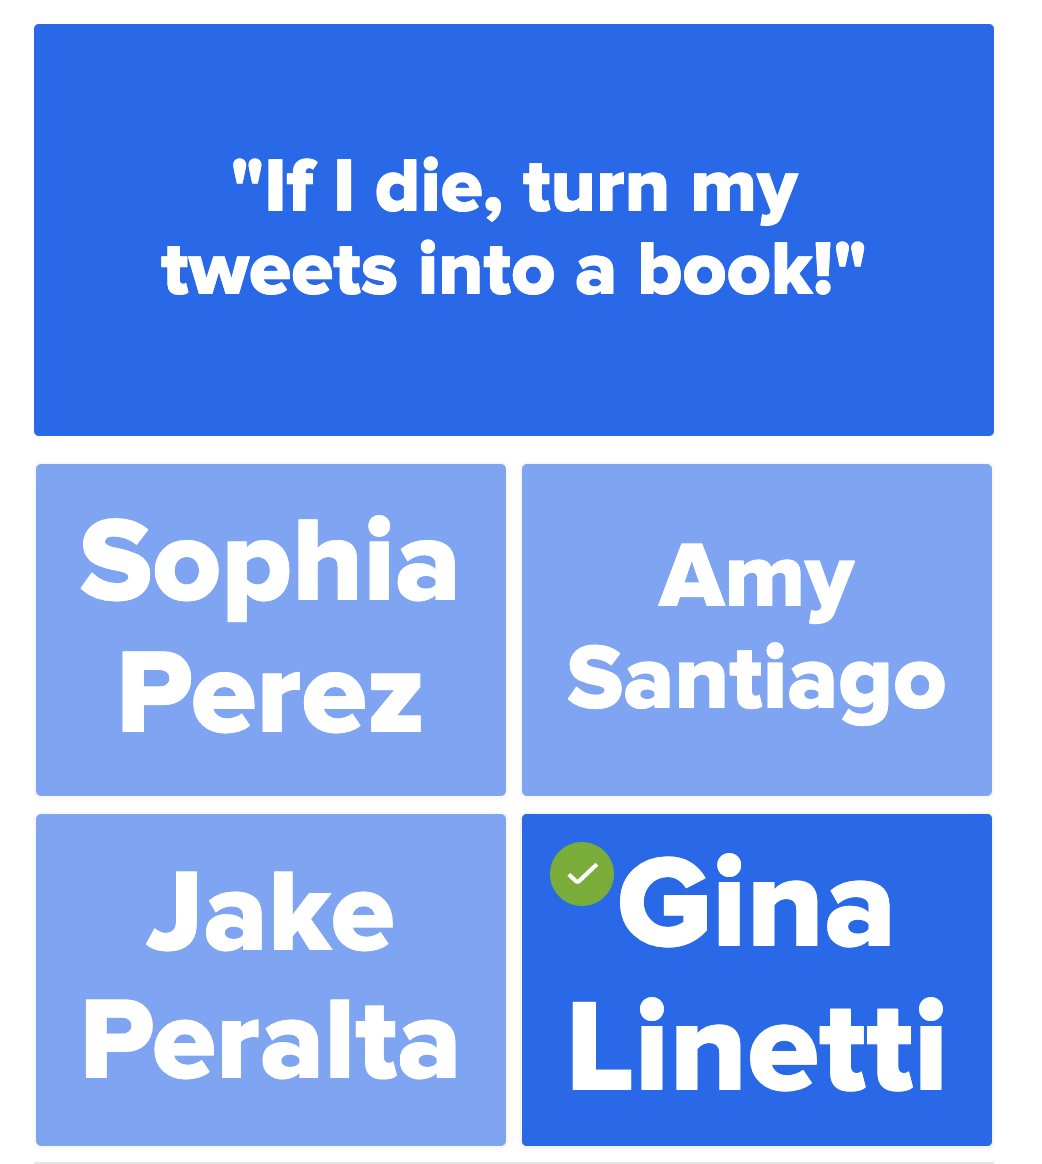 """Who said it? """"If I die, turn my tweets into a book!"""""""